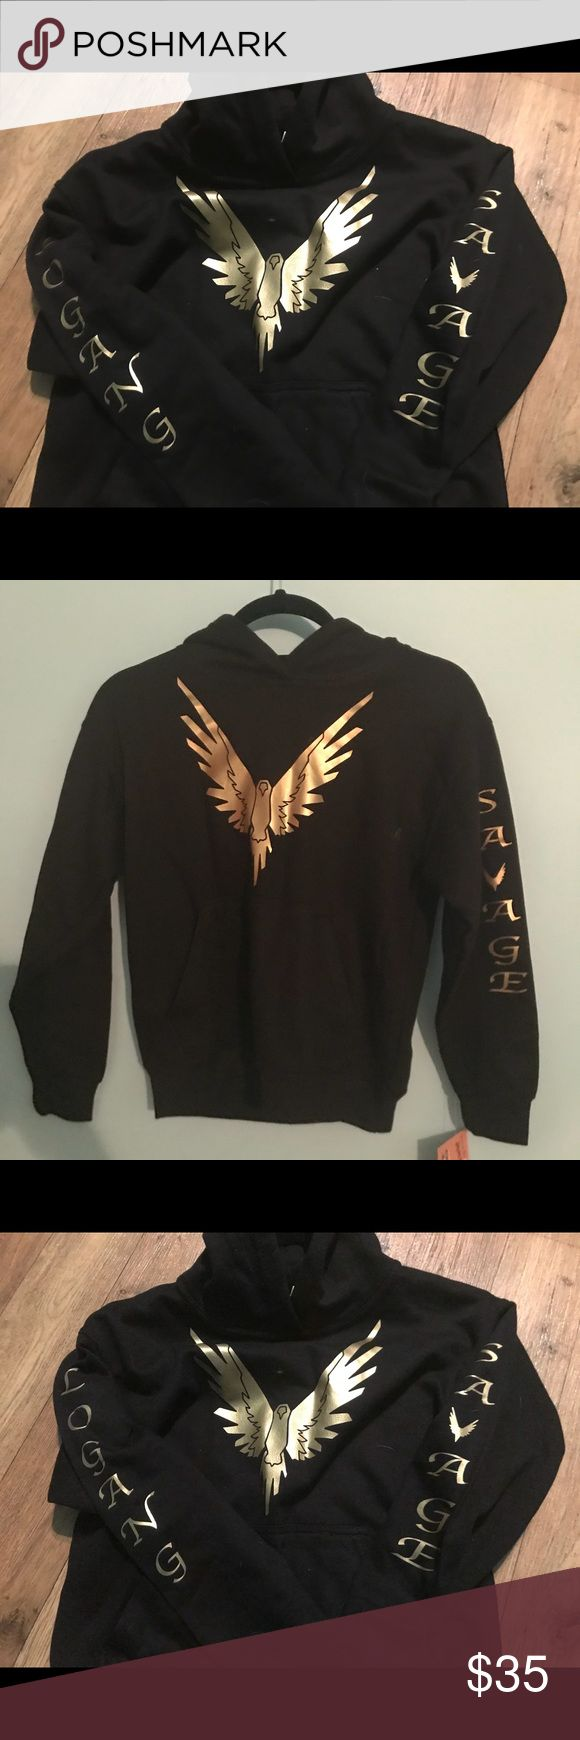 Logan Paul Logan Sweatshirt size m youth Trendy Logan Paul Logan Sweatshirt size m youth , GOLD SAVAGE & LOGANG Down the sleeves with the maverick logo on the front and gold, hoodie with kangaroo pocket new with tags Jackets & Coats